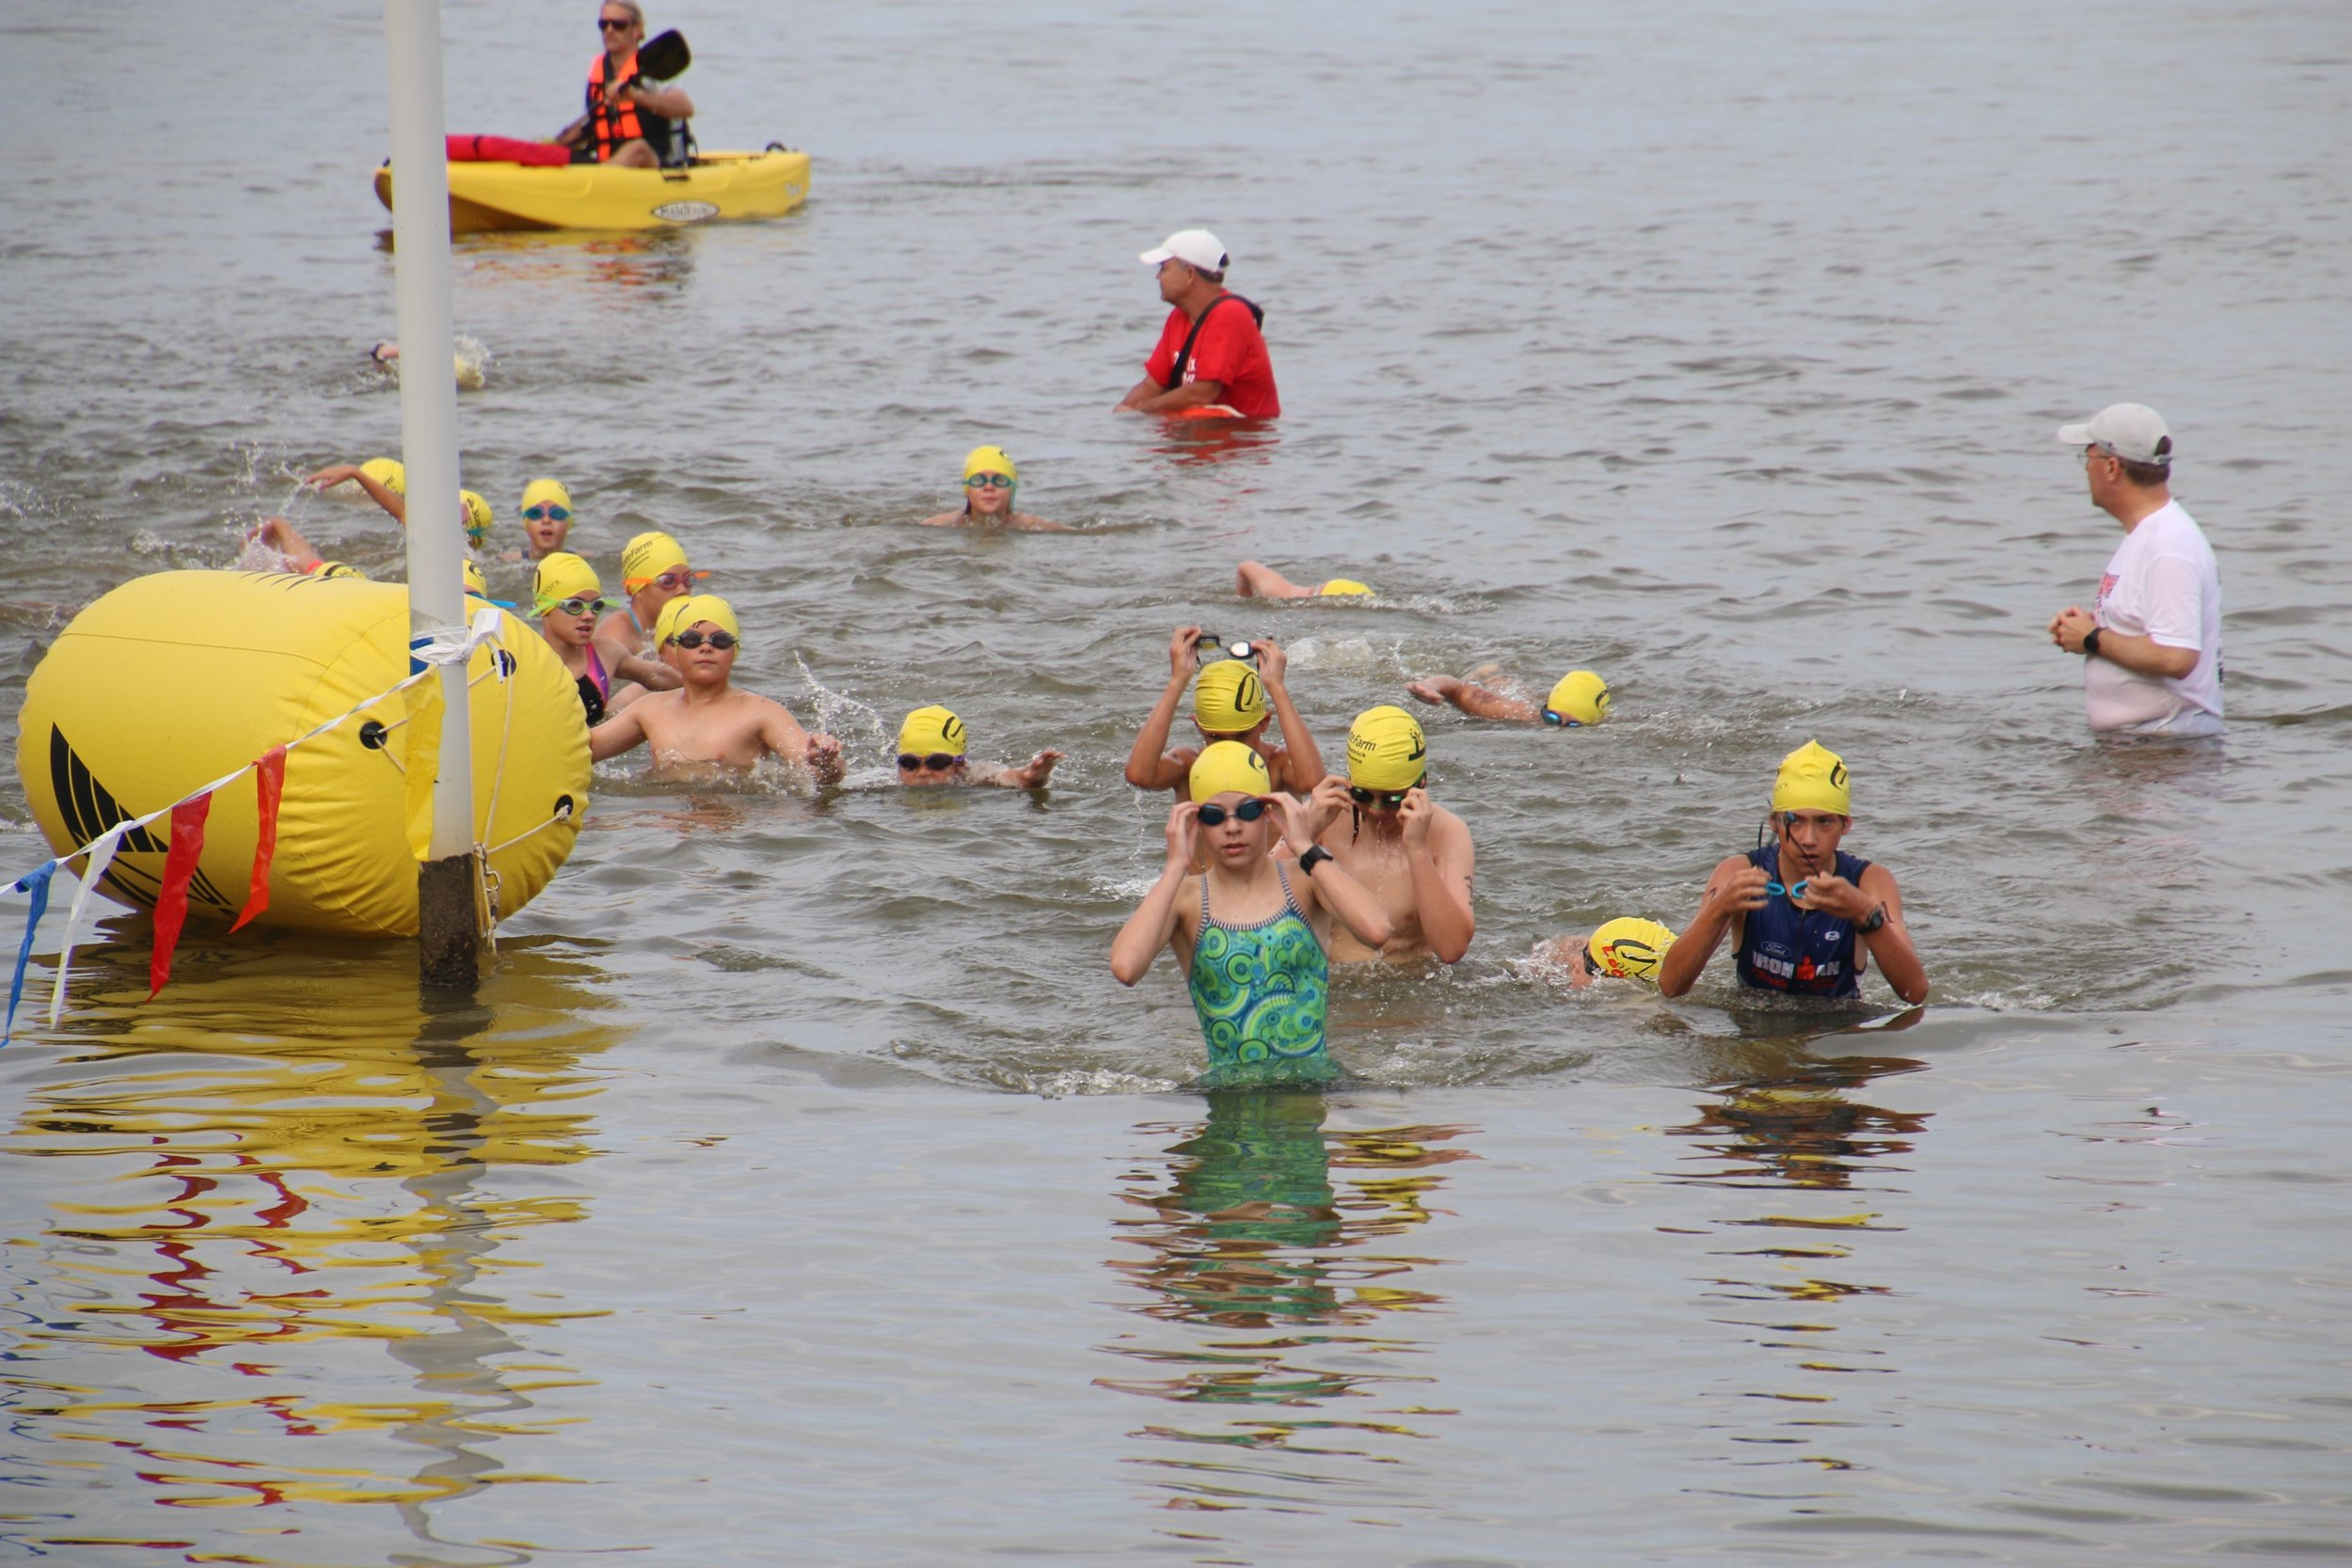 We had a great time partnering with Eastern Shore Triathlon Club to co-host the Jubilee Kids Triathlon this year!